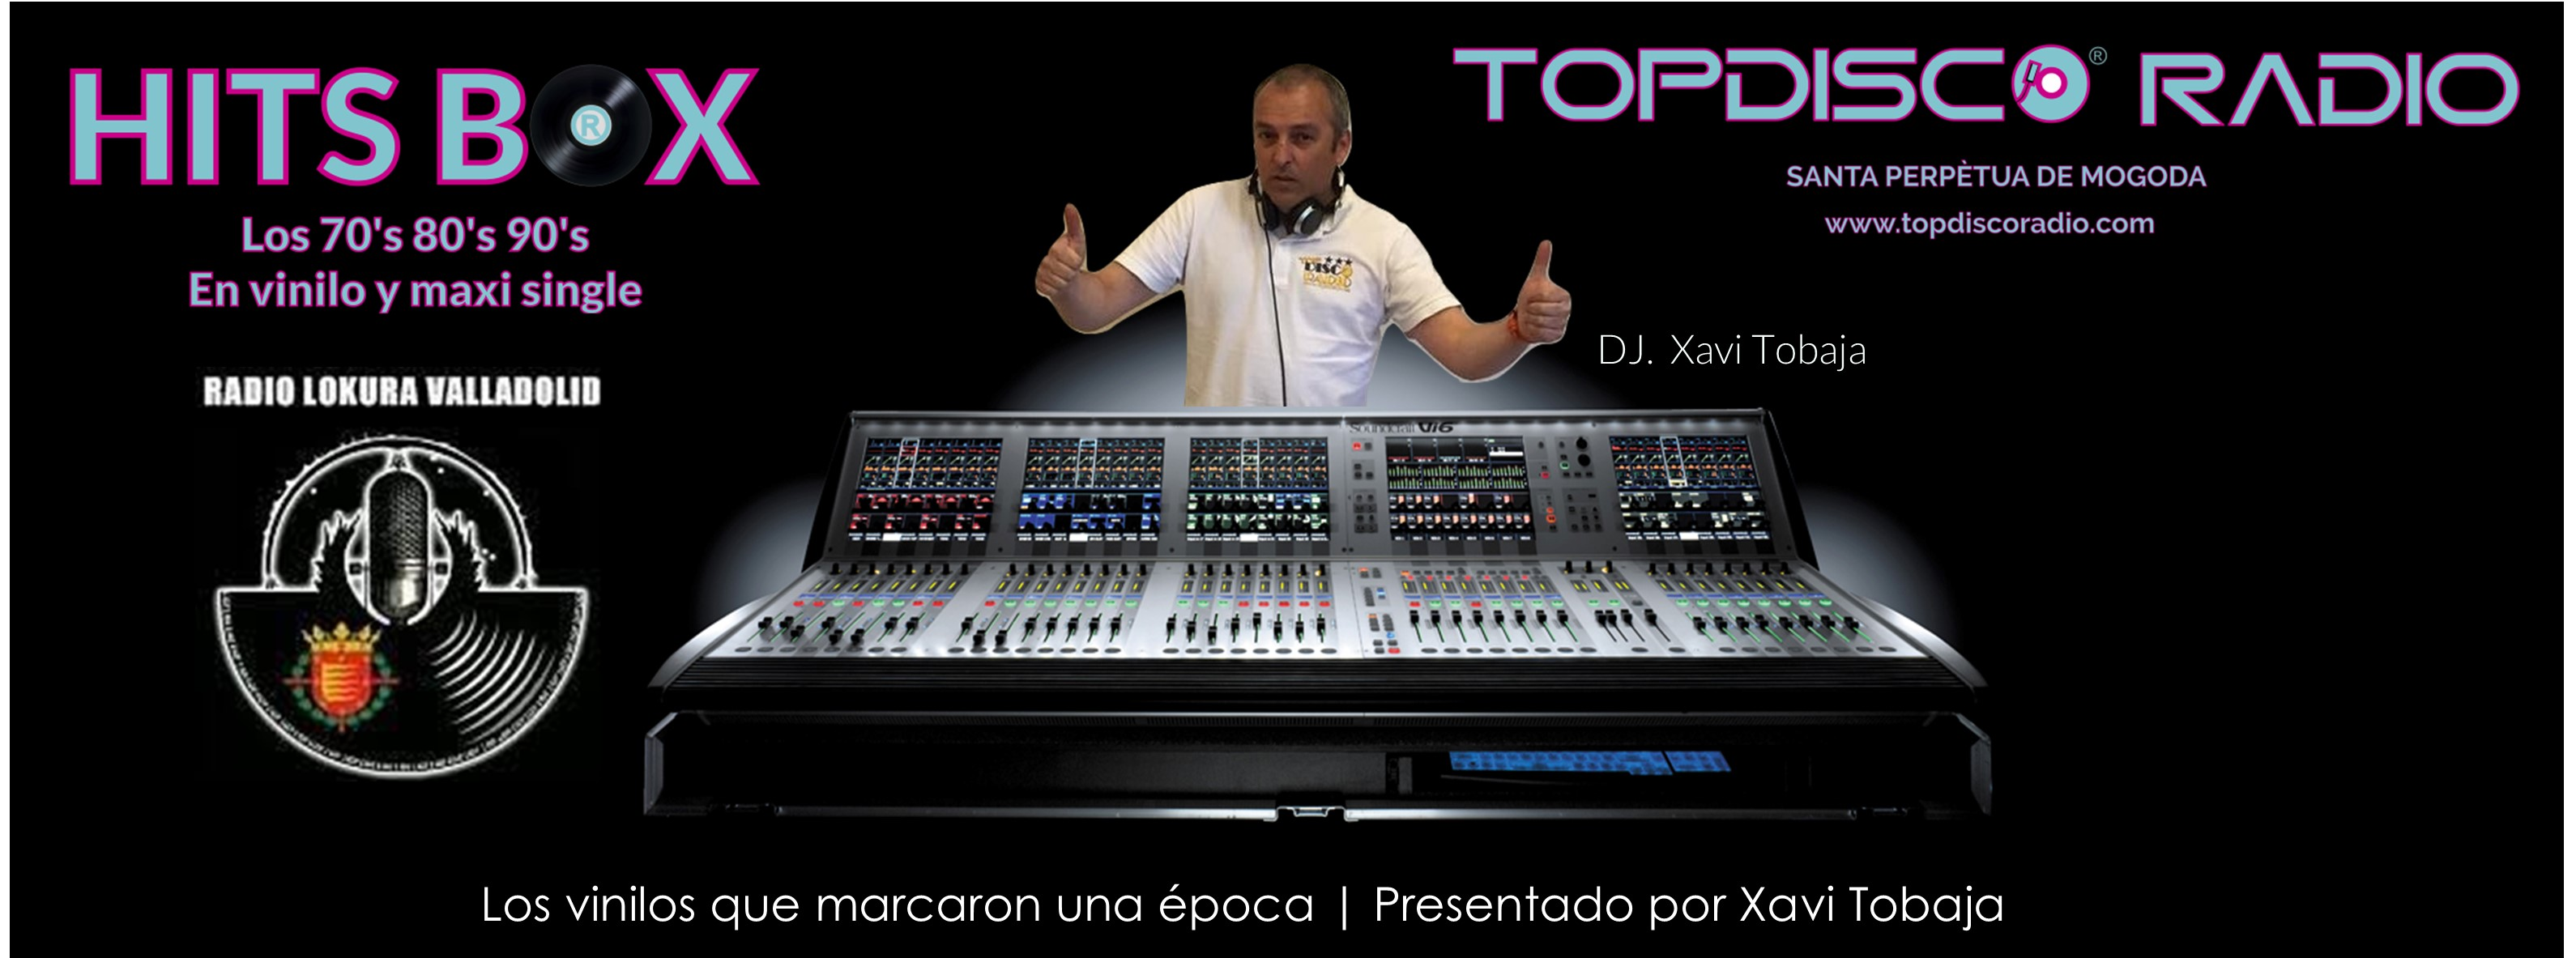 Hits Box de Topdisco Radio con Xavi Tobaja Radio Lokura Valladolid